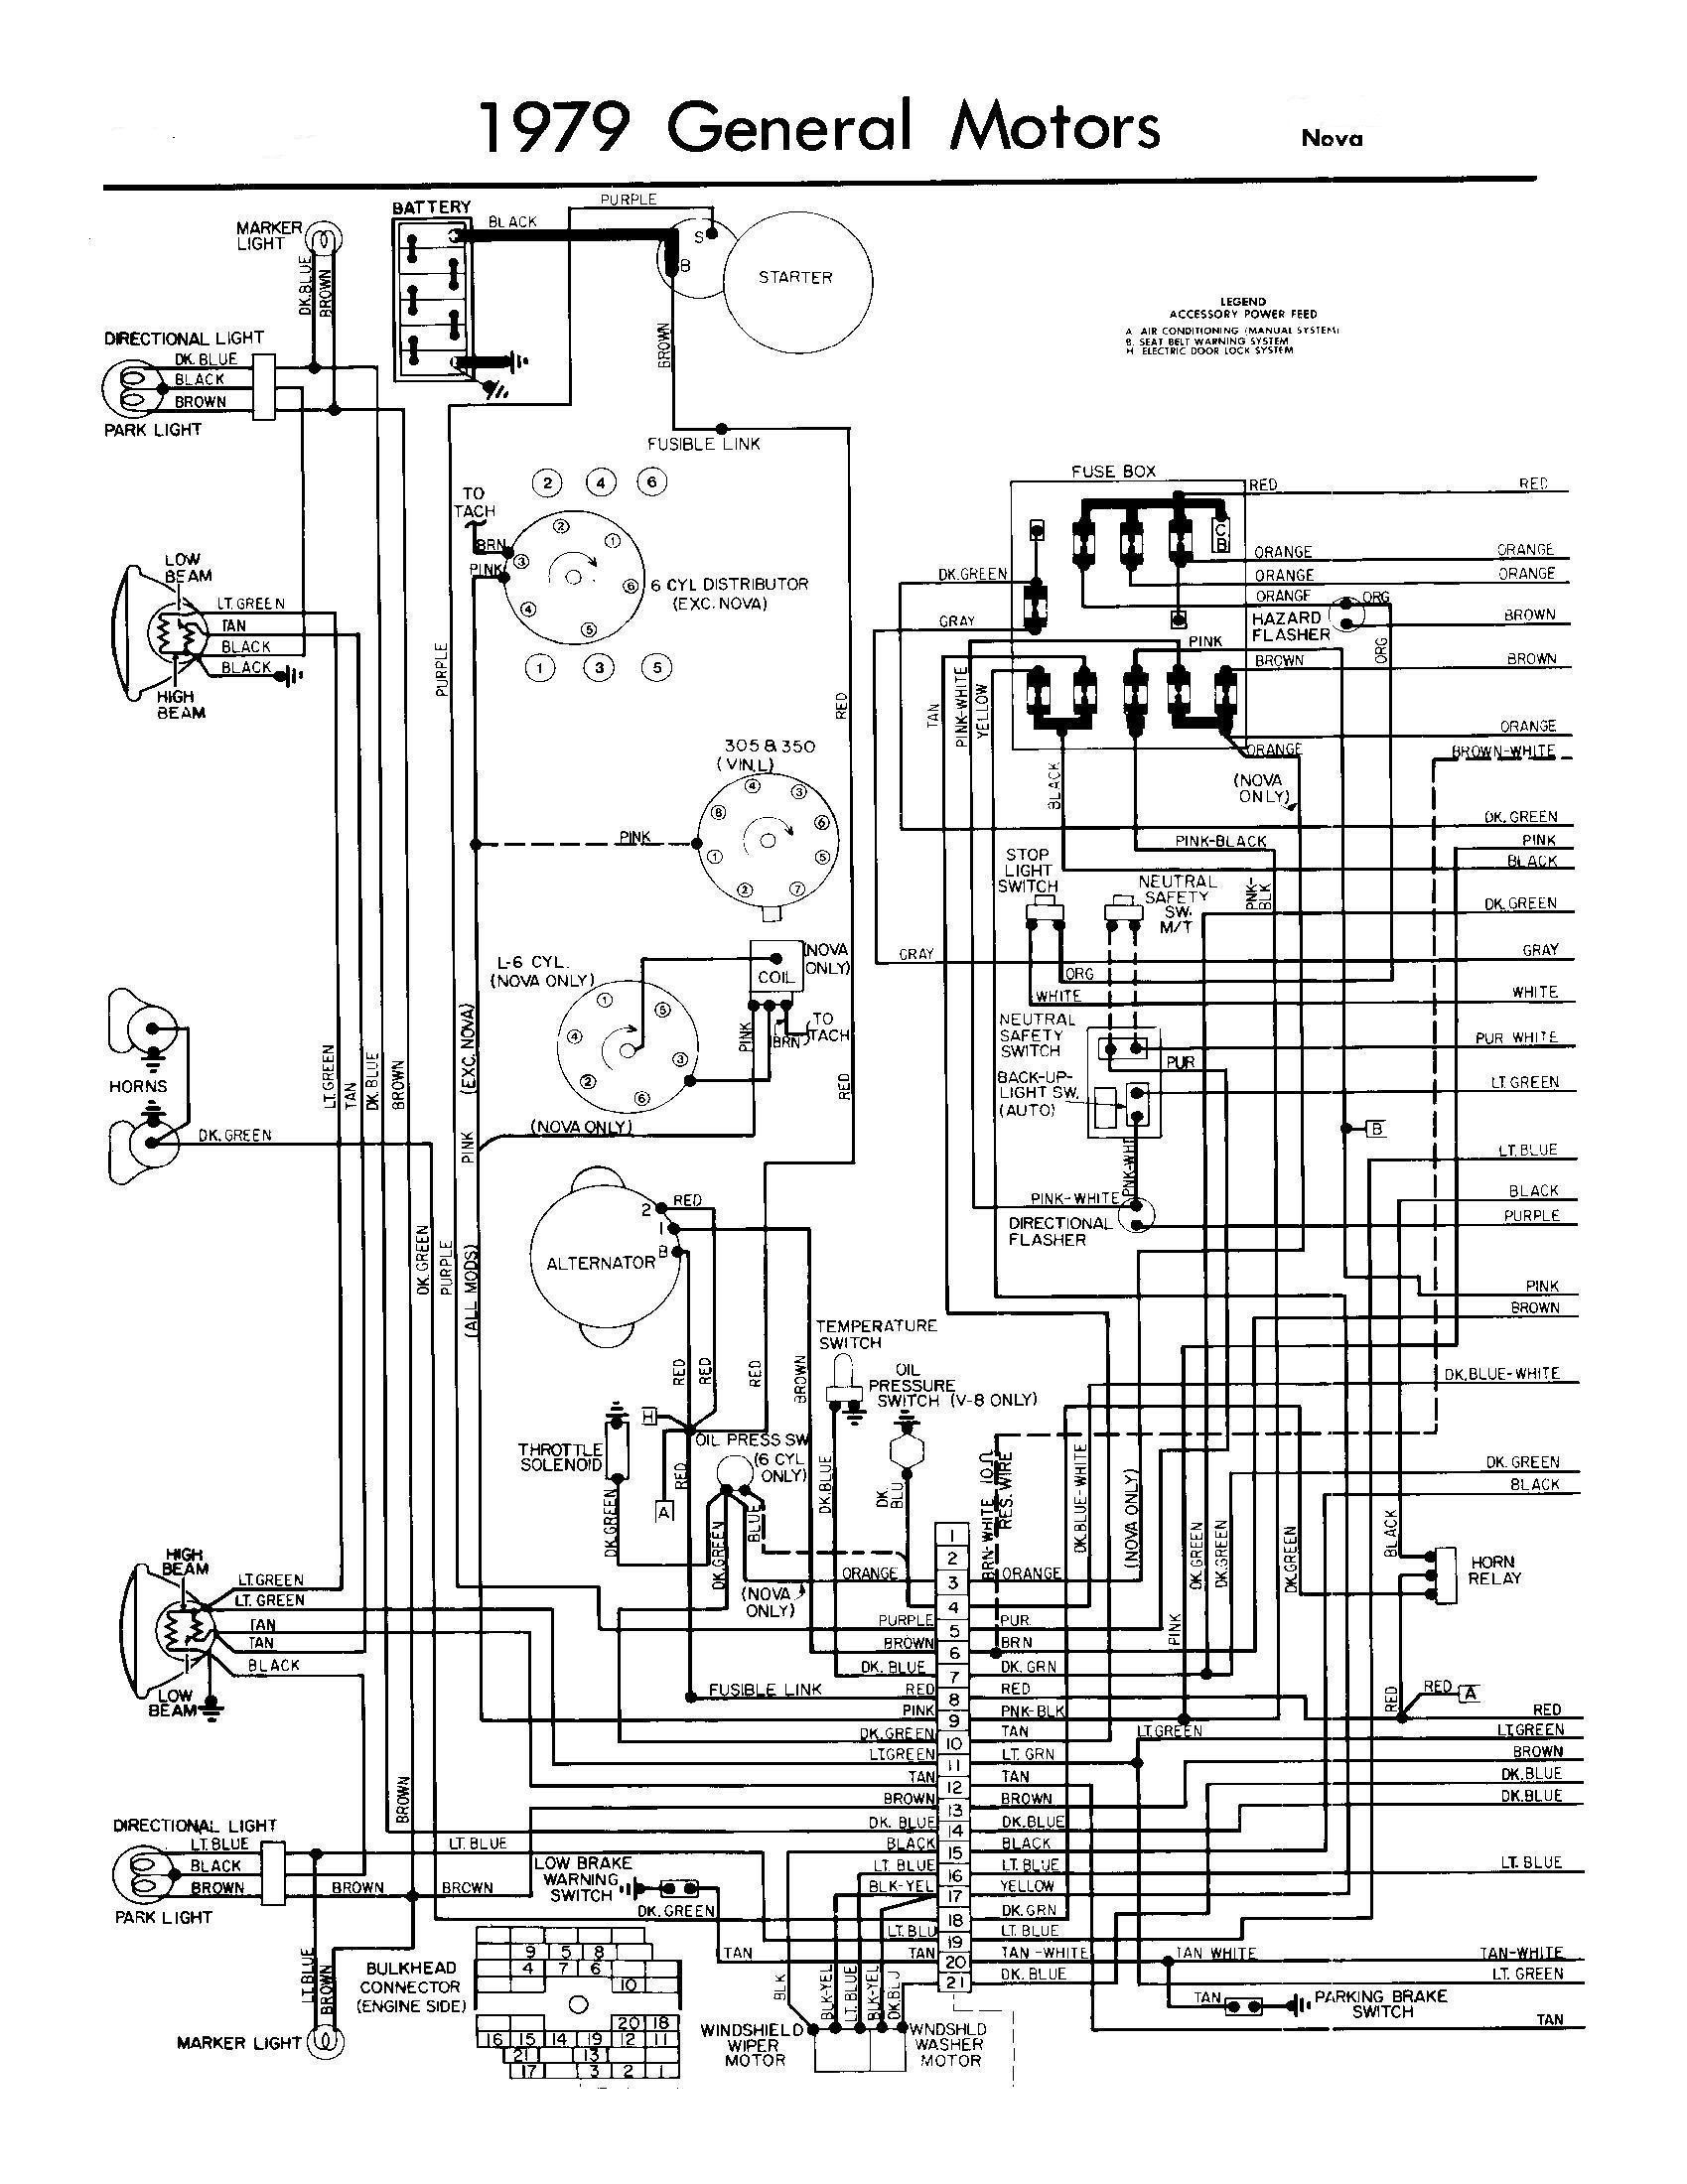 1978 nova wiring diagram wiring diagram library u2022 rh wiringboxa today 1970 nova wiring diagram 70 nova dash wiring diagram